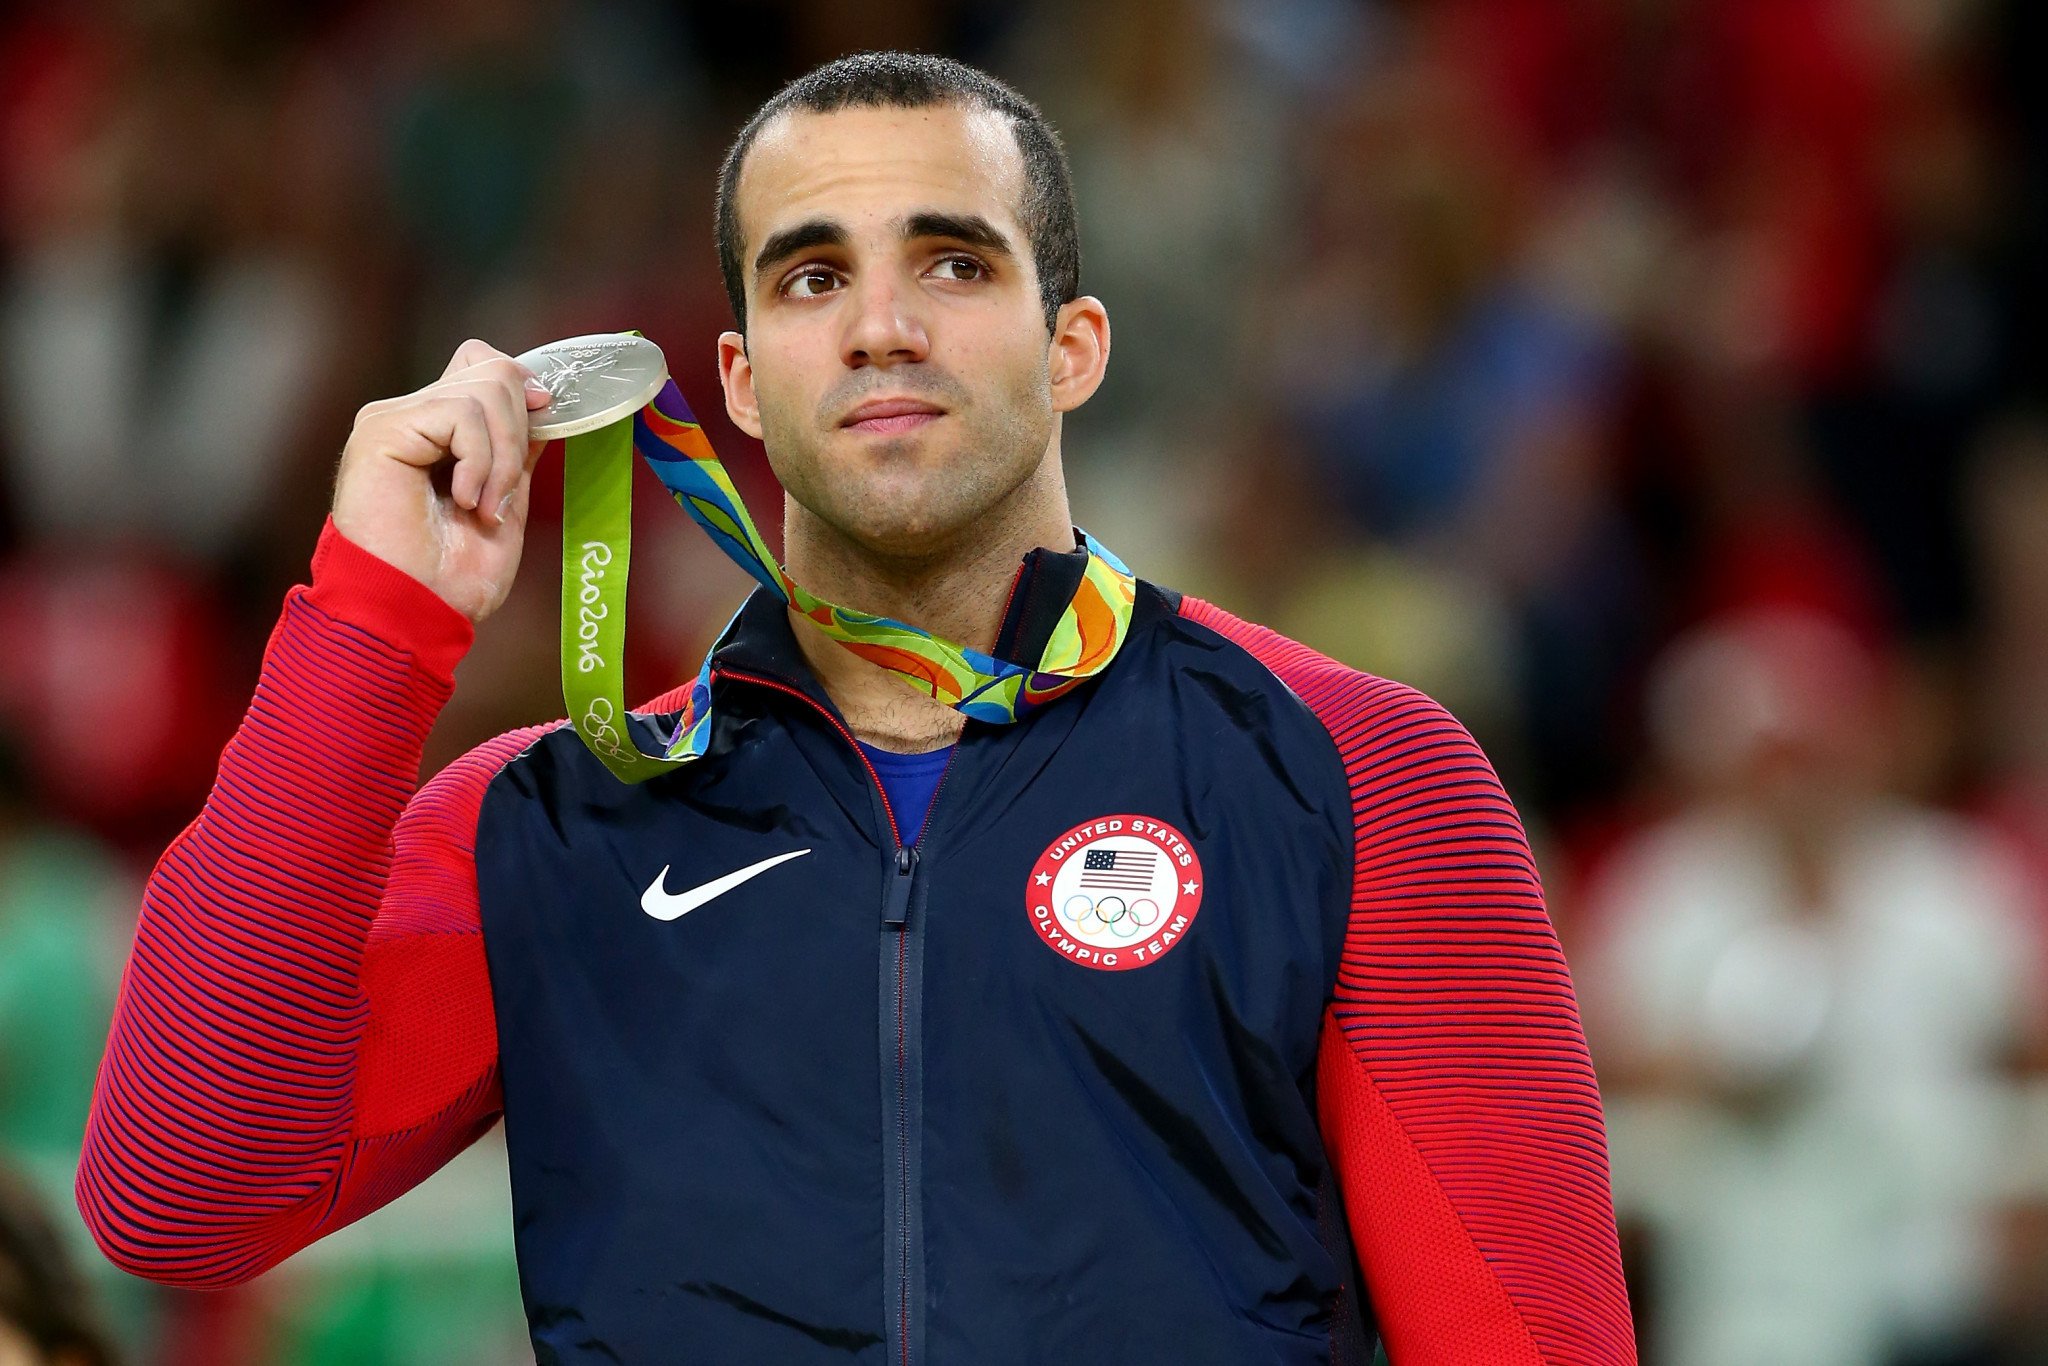 Silver medalist Danell Leyva of the United States celebrates on the podium at the medal ceremony for the Horizontal Bar on Day 11 of the Rio 2016 Olympic Games ©Getty Images